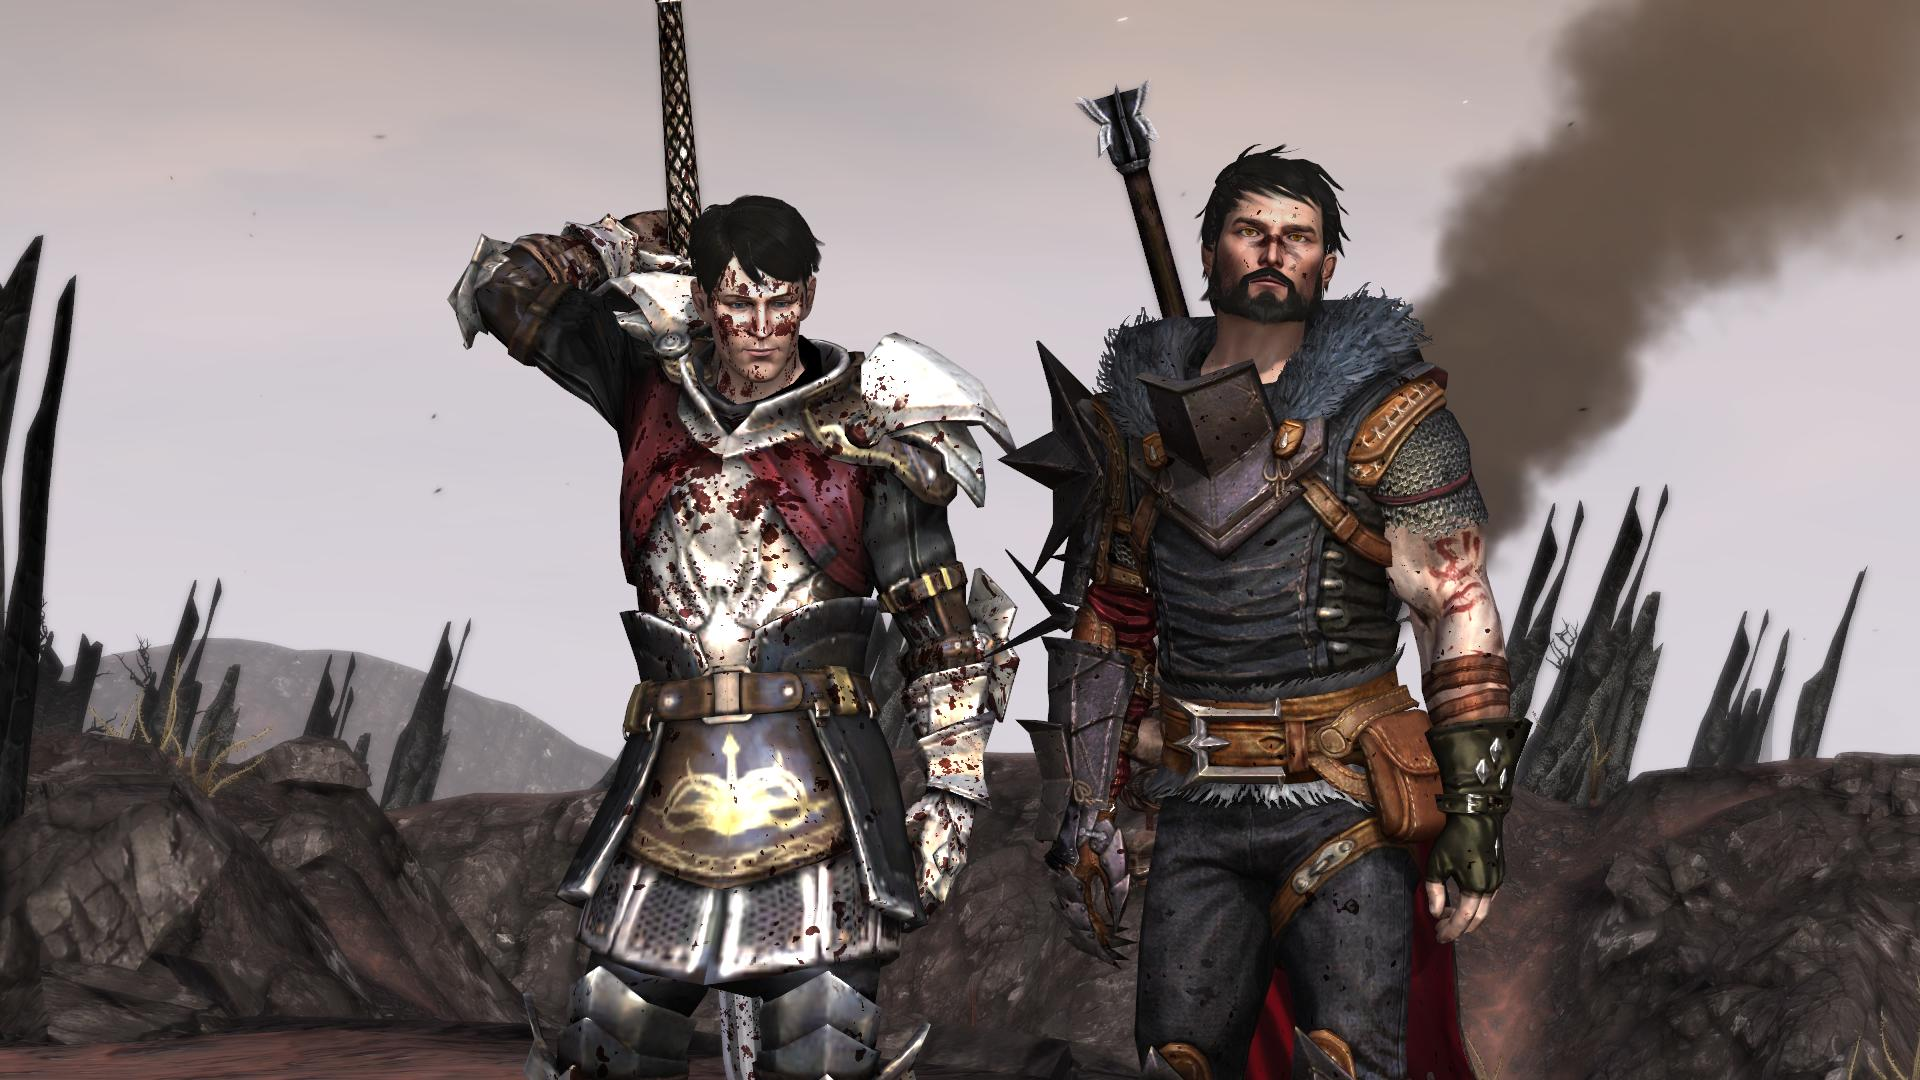 Dragon Age Wallpapers 357321 Hd Wallpaper Backgrounds